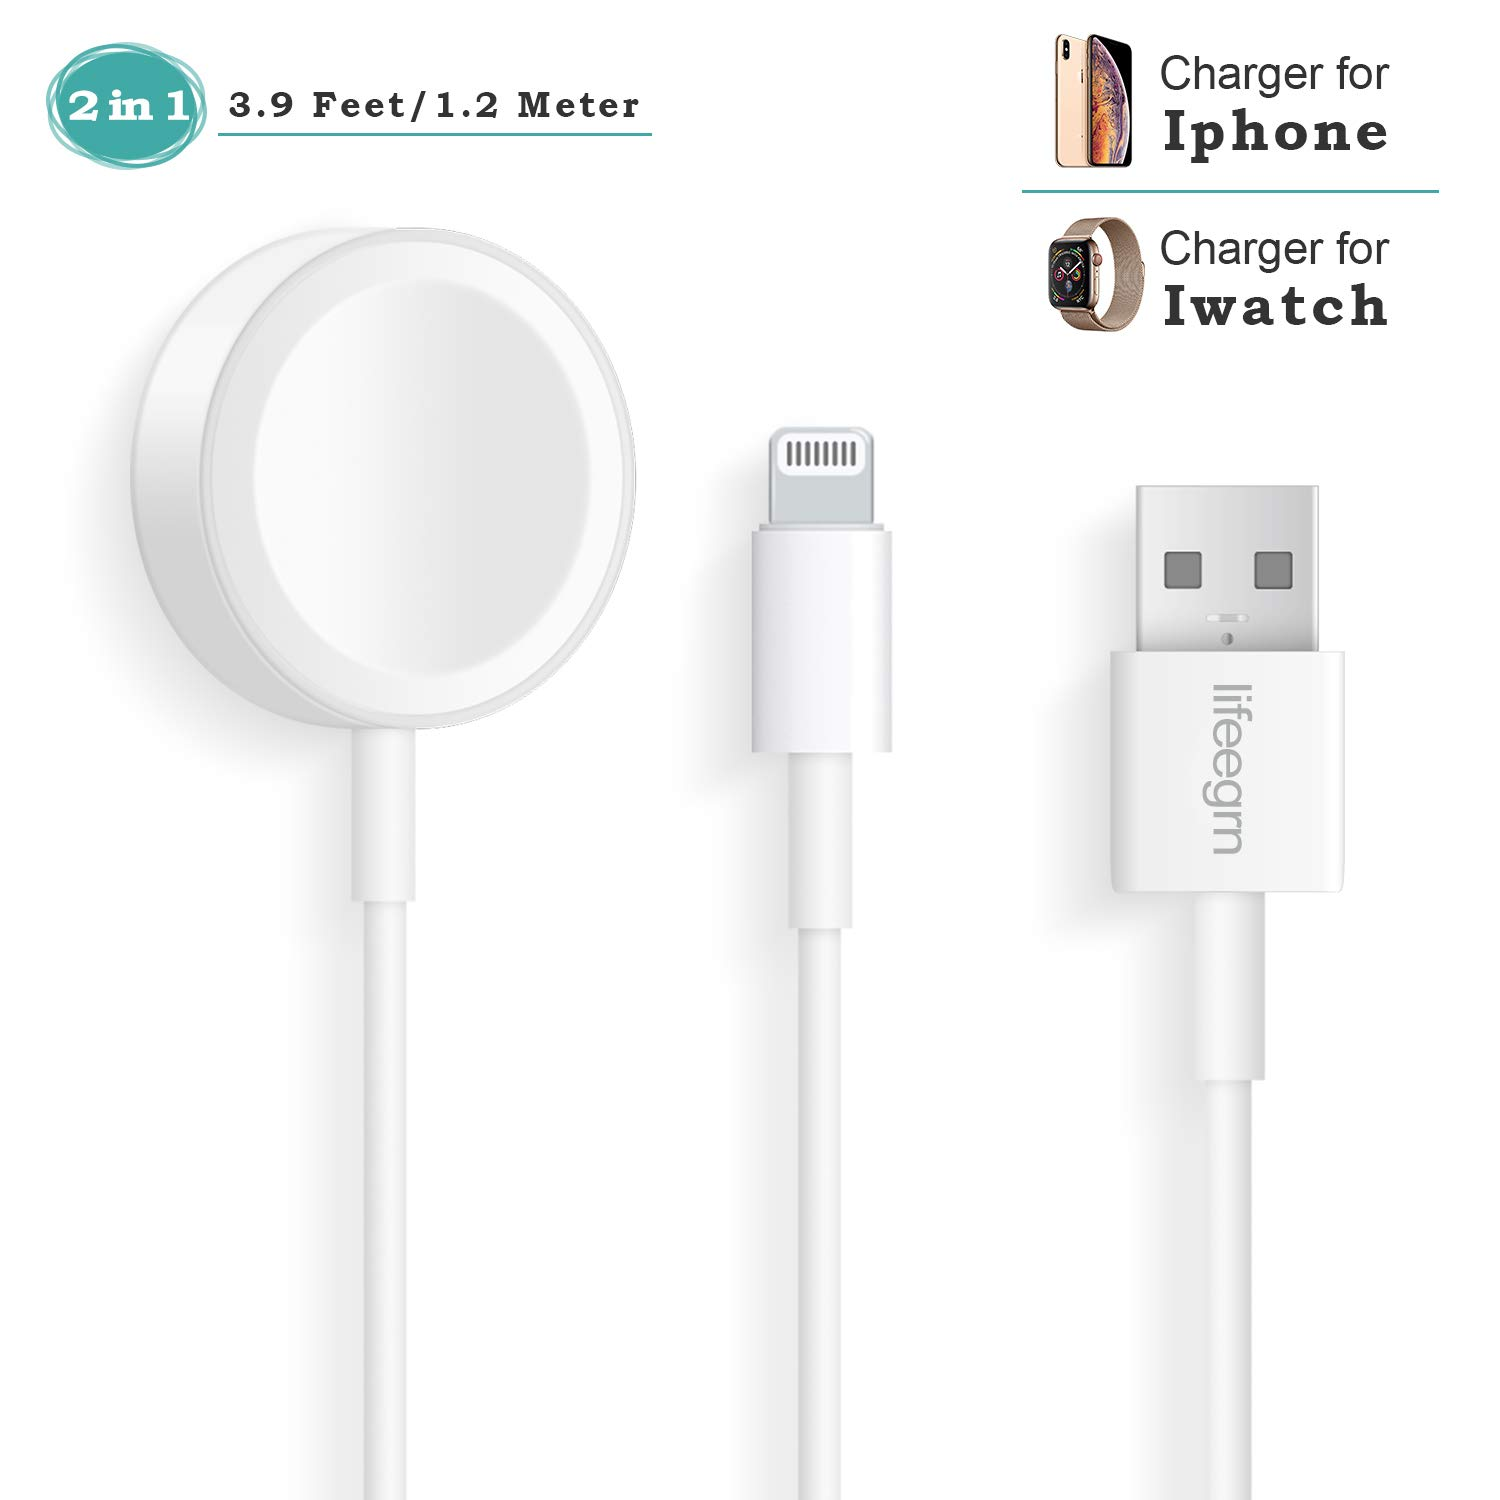 Apple Watch iWatch Charger, 2 in 1 Phone Charger with 3.9ft/1.2m Charging Cable Compatible with for Apple Watch Series 4/3/2/1, iPhoneXR/XS/XS Max/X/8/8Plus/7/7Plus/6/6Plus/iPad4/Air/mini/Airpods by lifeegrn